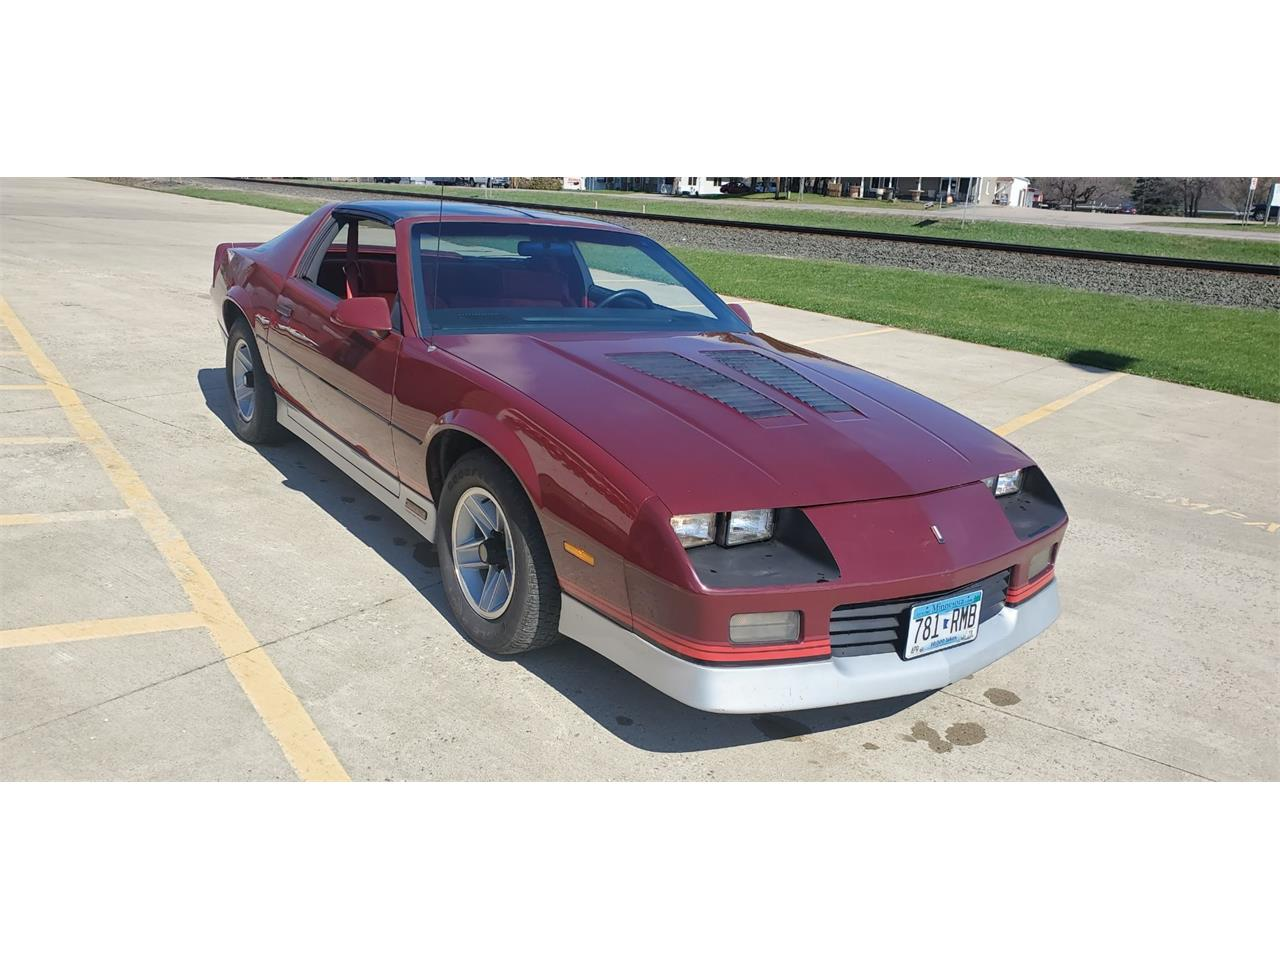 1985 Chevrolet Camaro (CC-1374572) for sale in Annandale, Minnesota